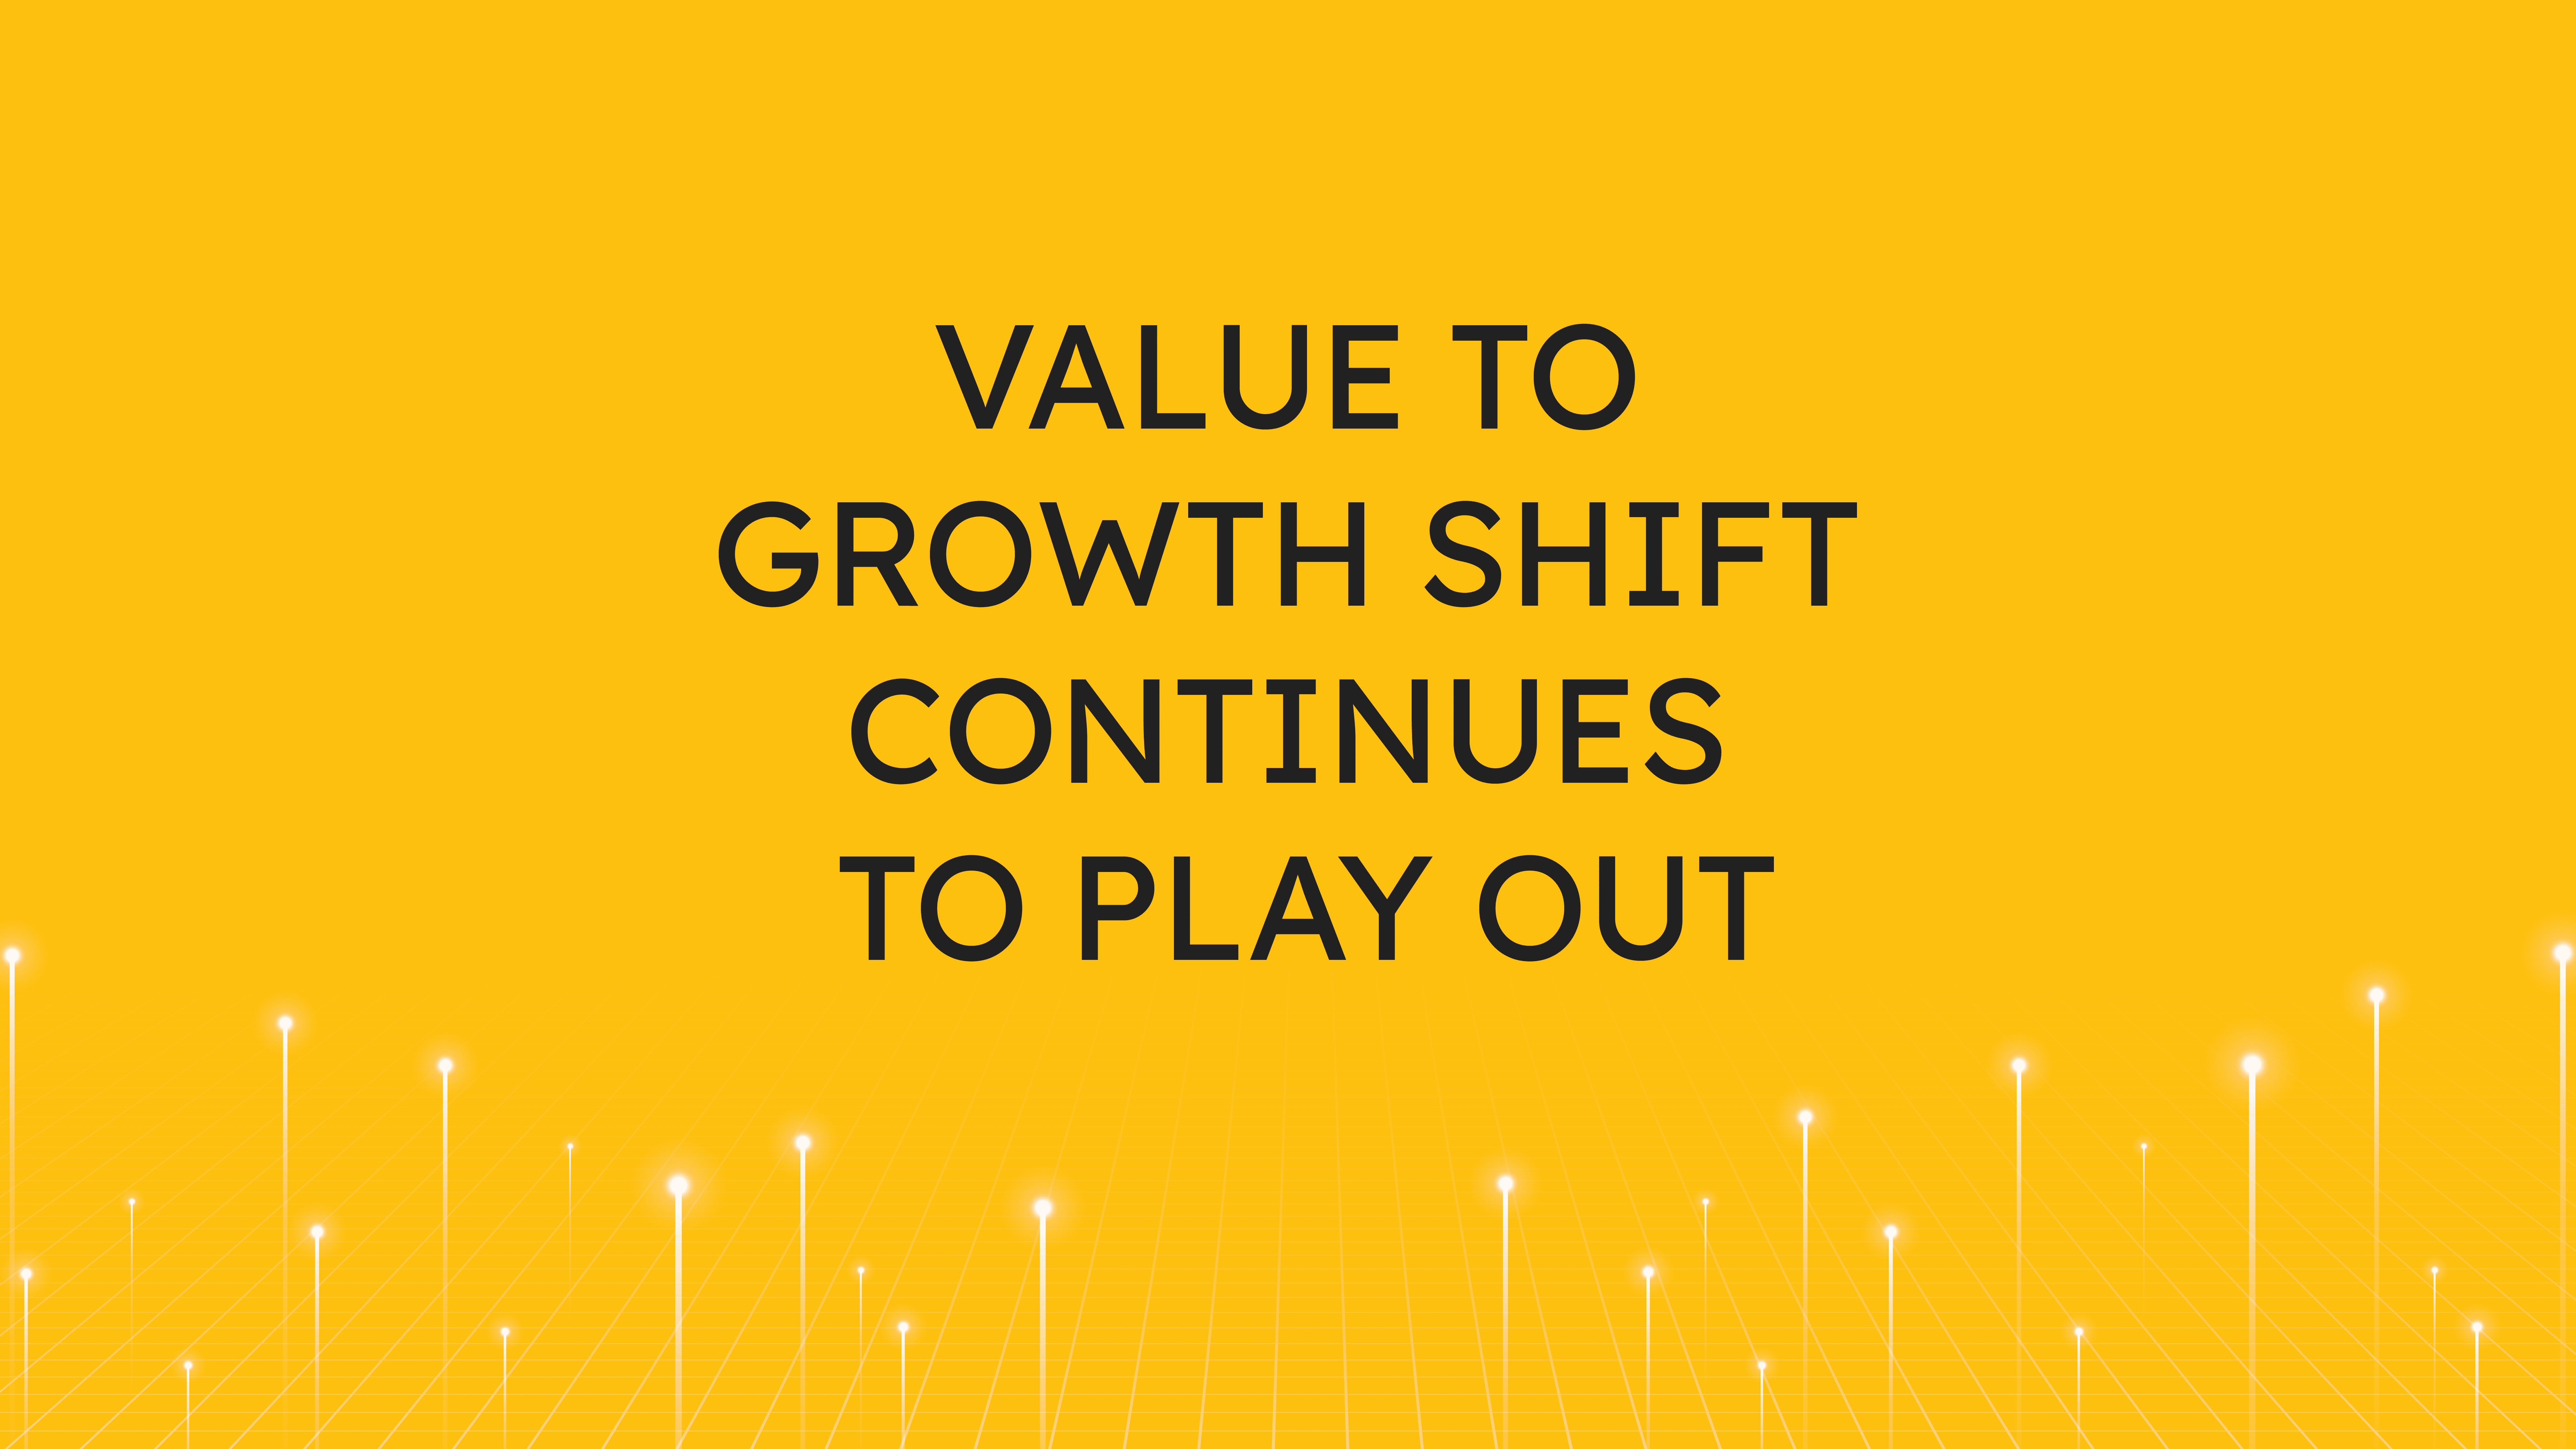 Value to Growth Shift  Continues to Play Out